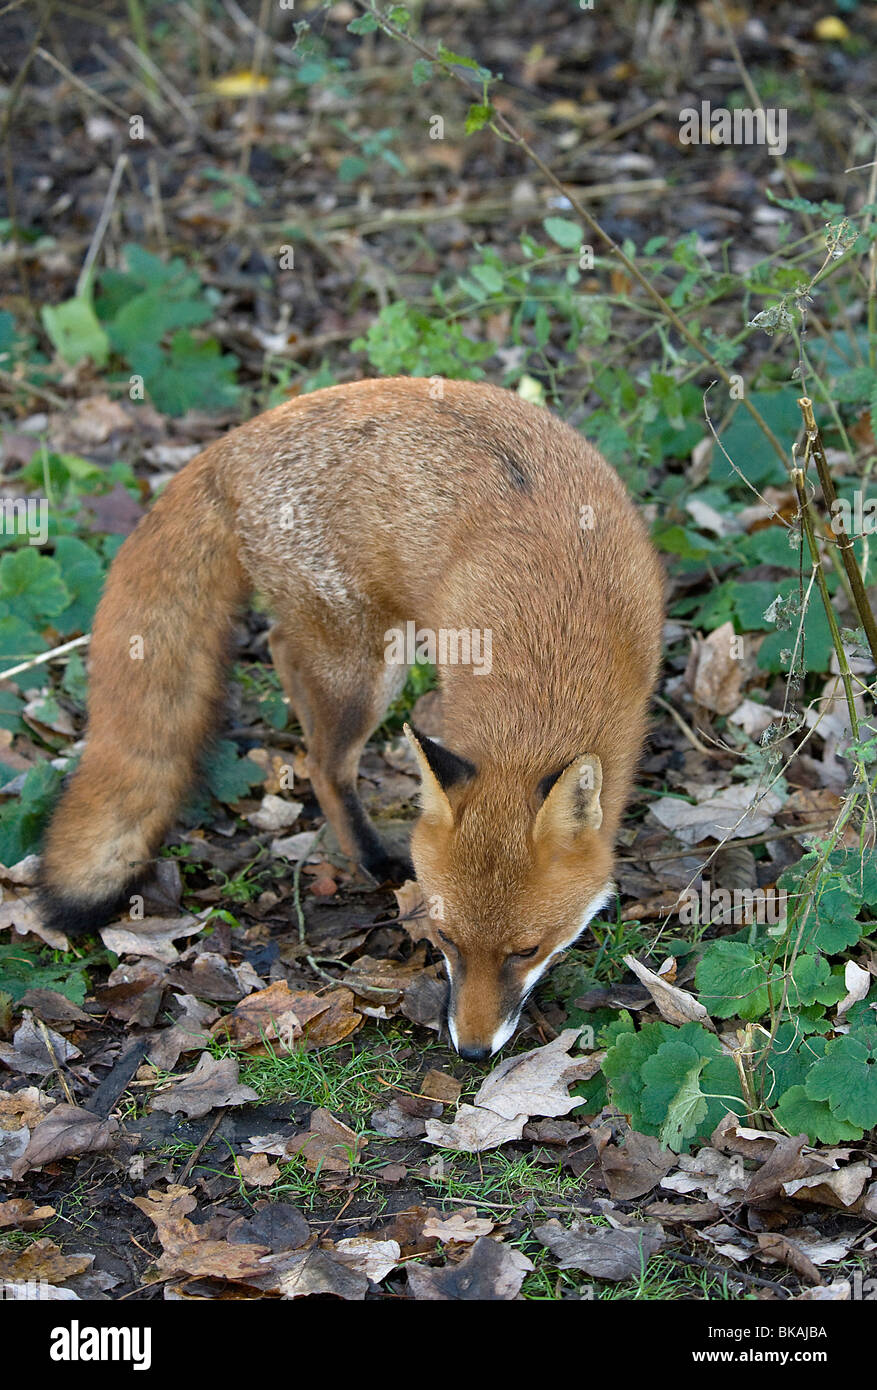 Red fox, Vulpes vulpes, searches for food beneath bird feeders - Stock Image